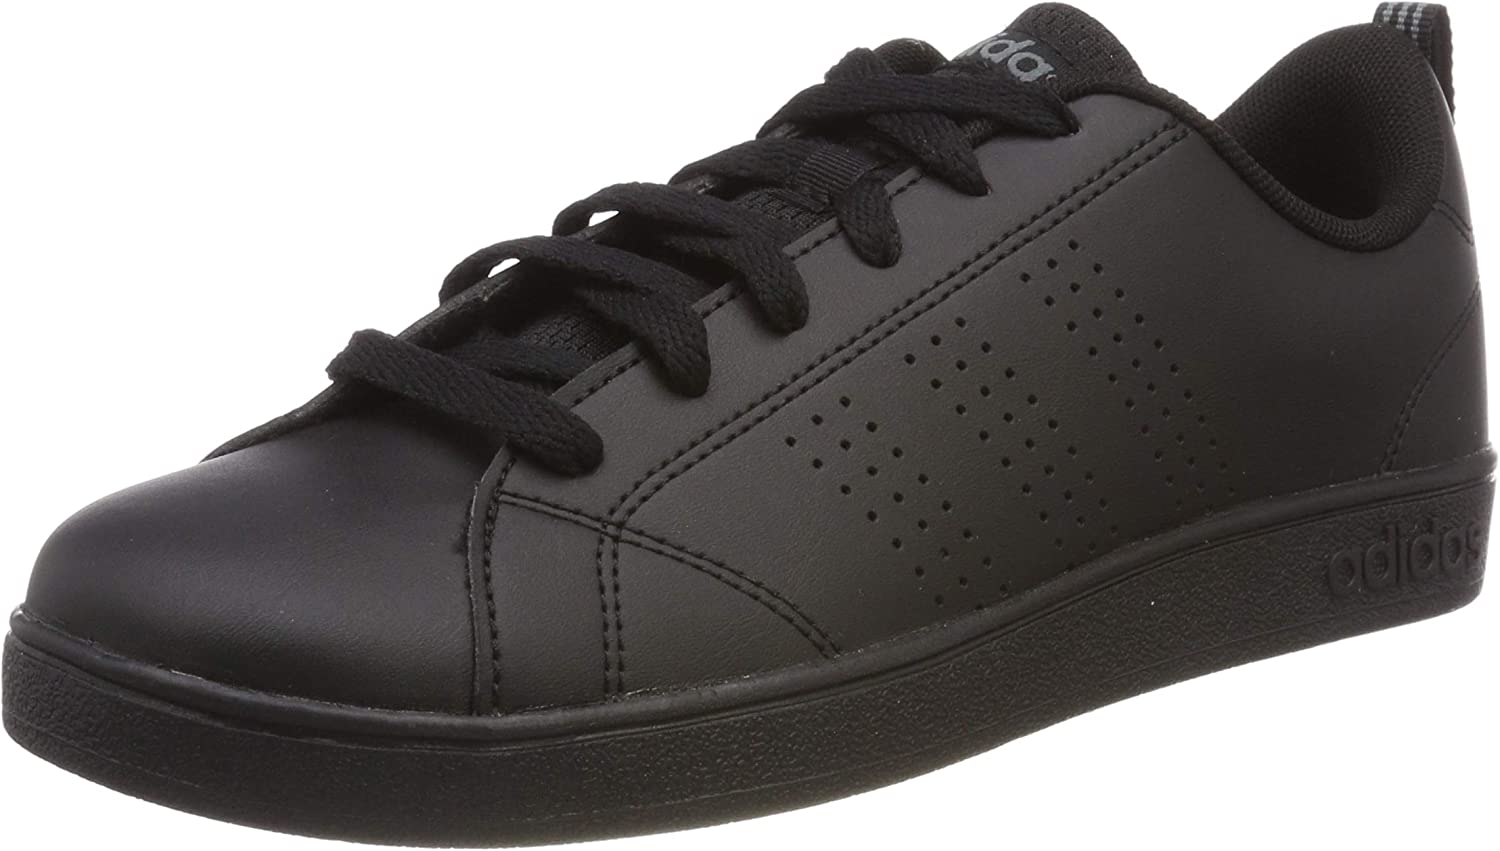 Zapatillas de Deporte Unisex Ni/ños adidas Vs Advantage Cl K